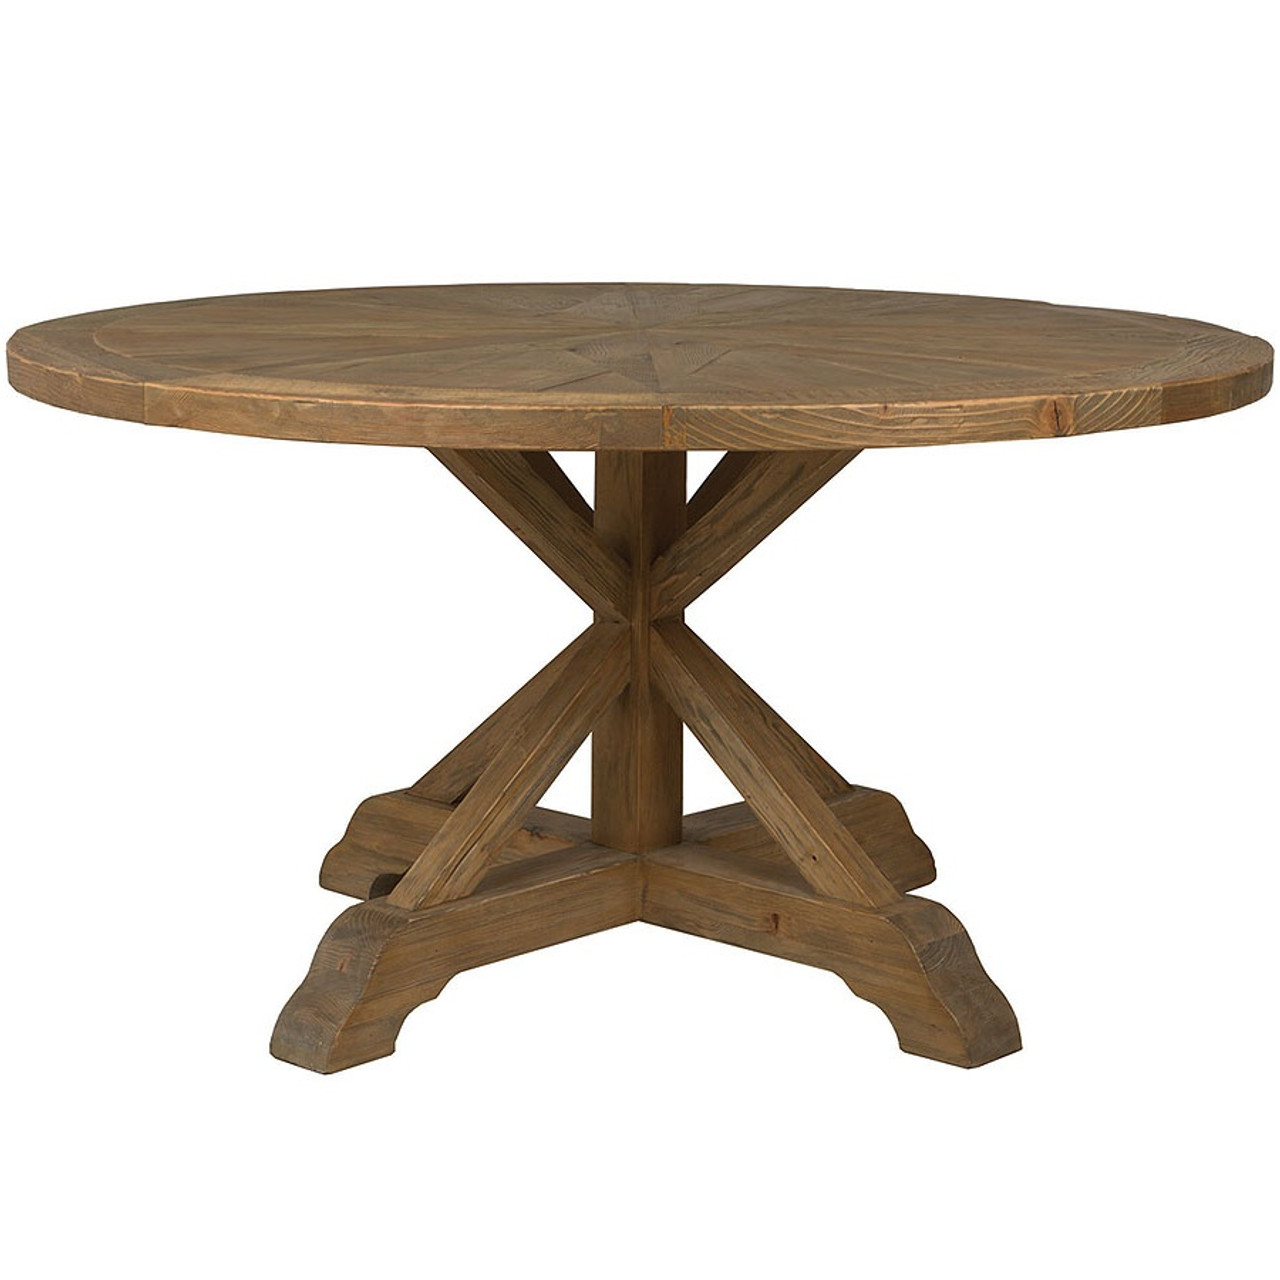 Opio reclaimed wood round dining table 60 zin home opio reclaimed wood round dining table workwithnaturefo